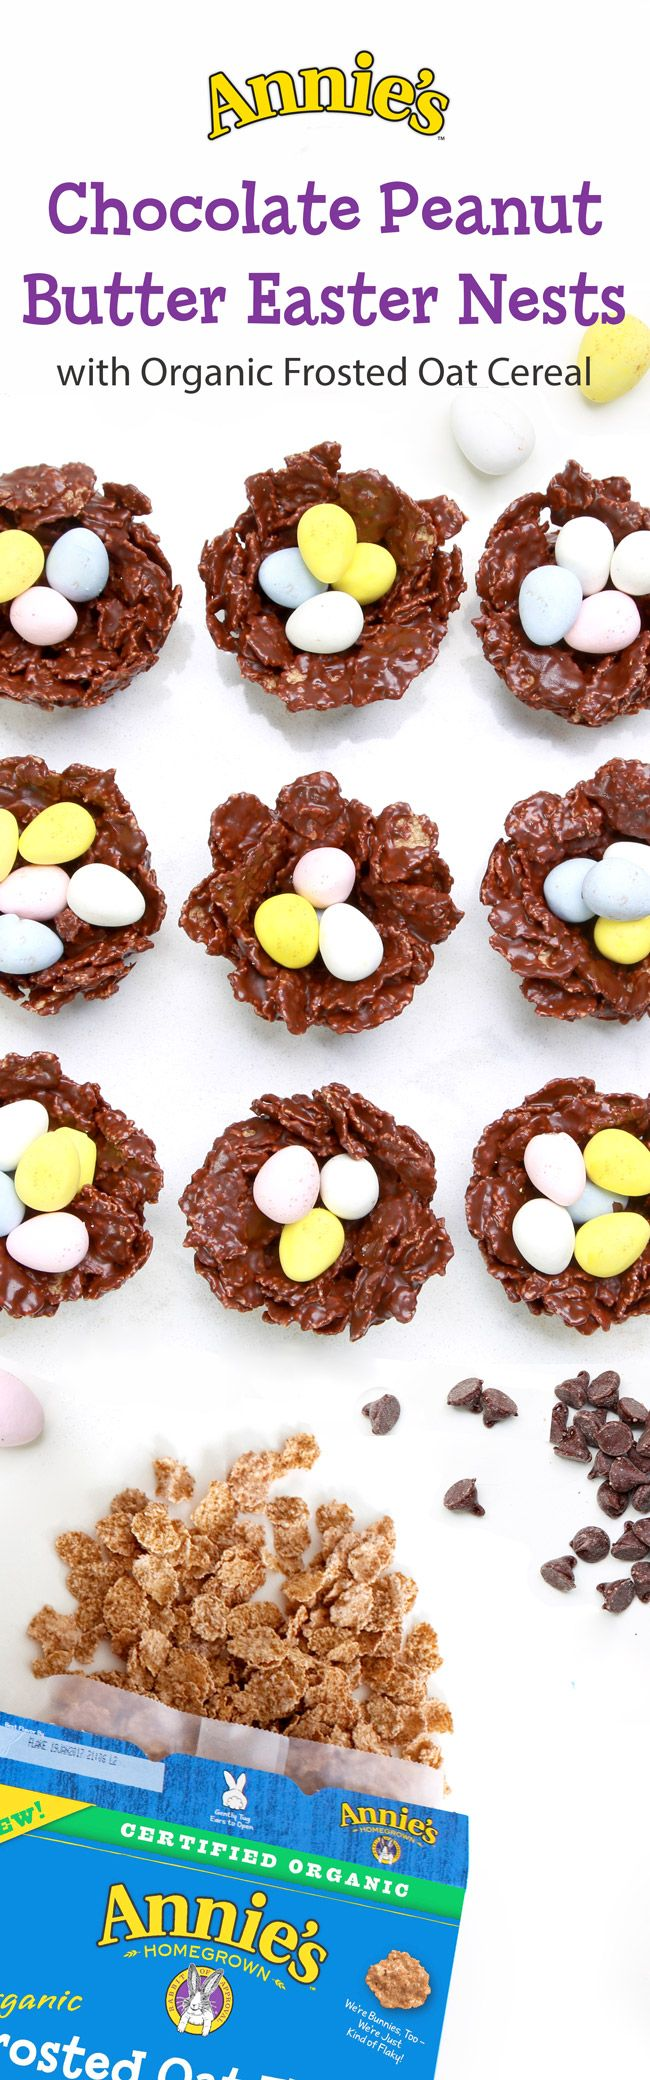 These Chocolate Peanut Butter Egg Nests are quick and easy to whip up for a special chewy, chocolatey, Easter treat!  All you need is a box of Annie's Organic Oat Flakes Cereal, some chocolate chips, peanut butter, and organic corn syrup, your chocolate eggs of choice… and you've got adorable, edible, egg nests perfect for an Easter or springtime treat!